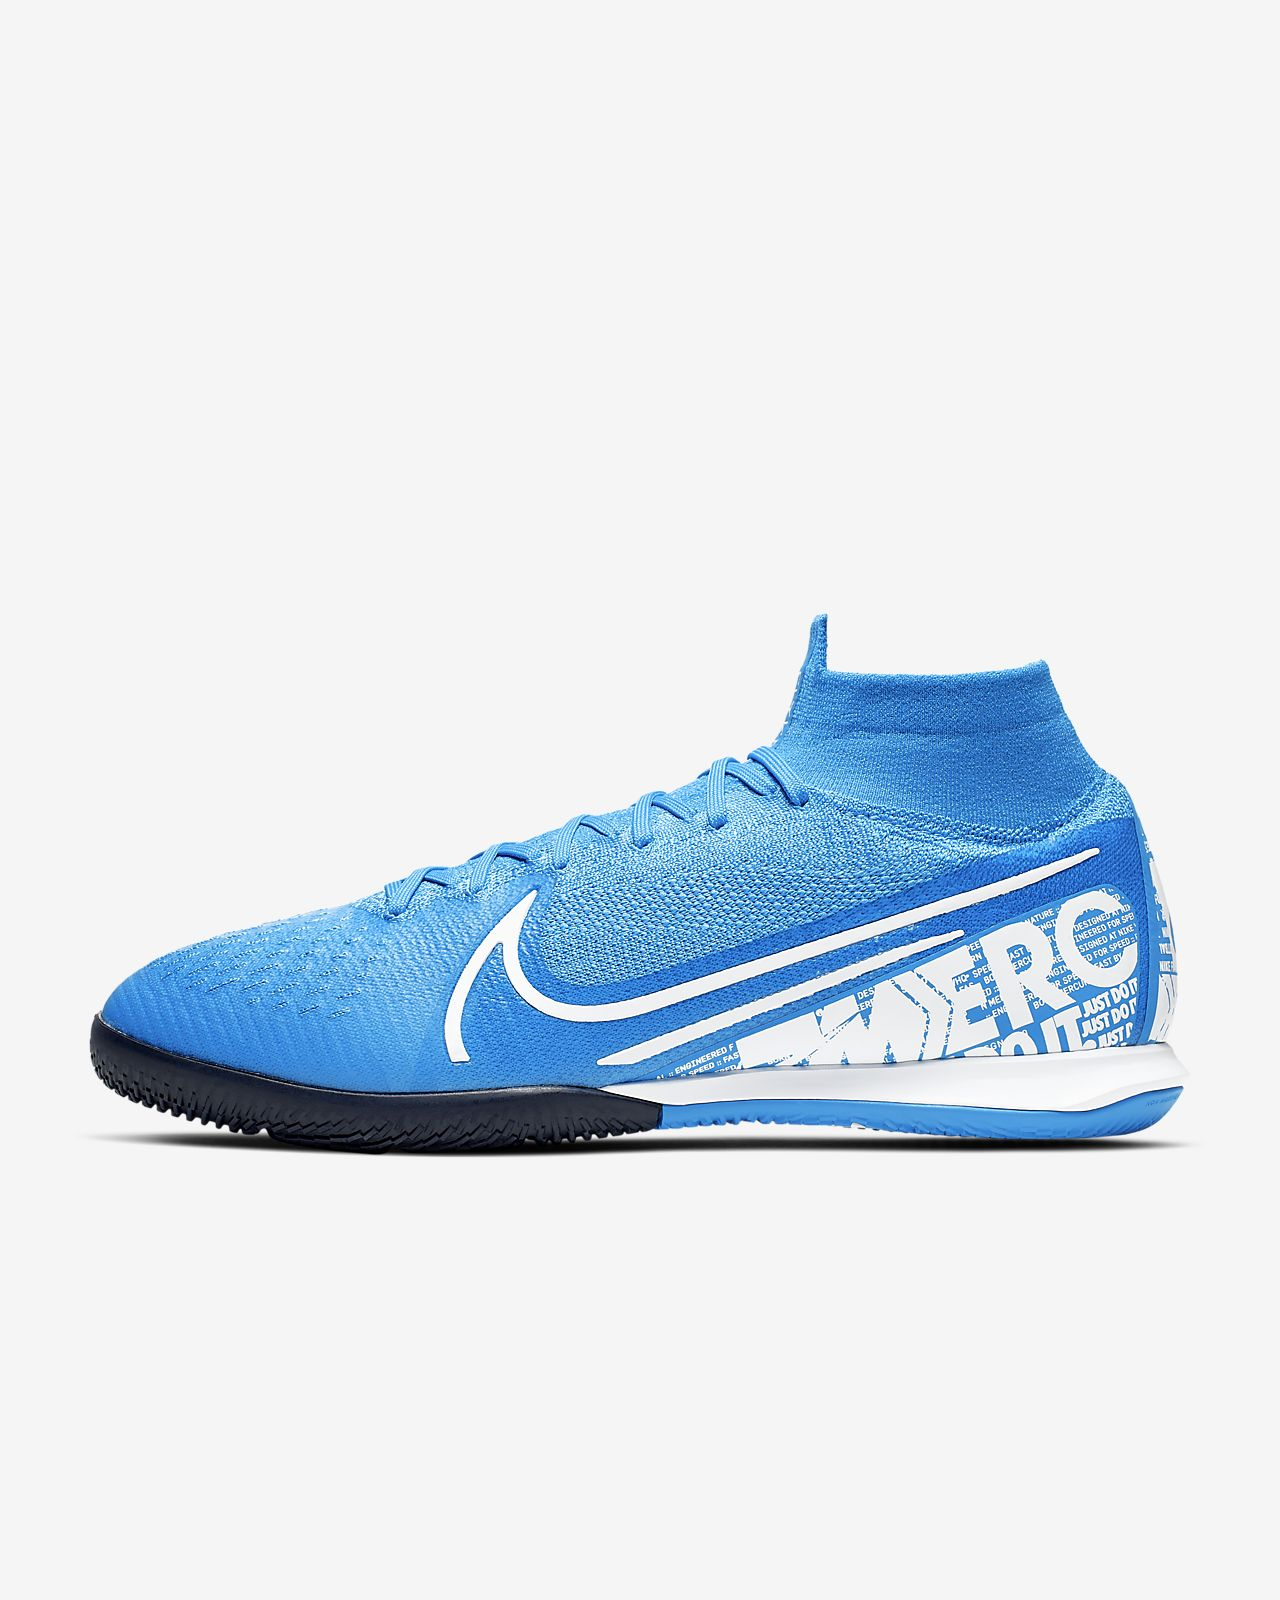 Saumon Adidas Chaussure Adidas Chaussure Racer Racer Life Life L3Rqj54A